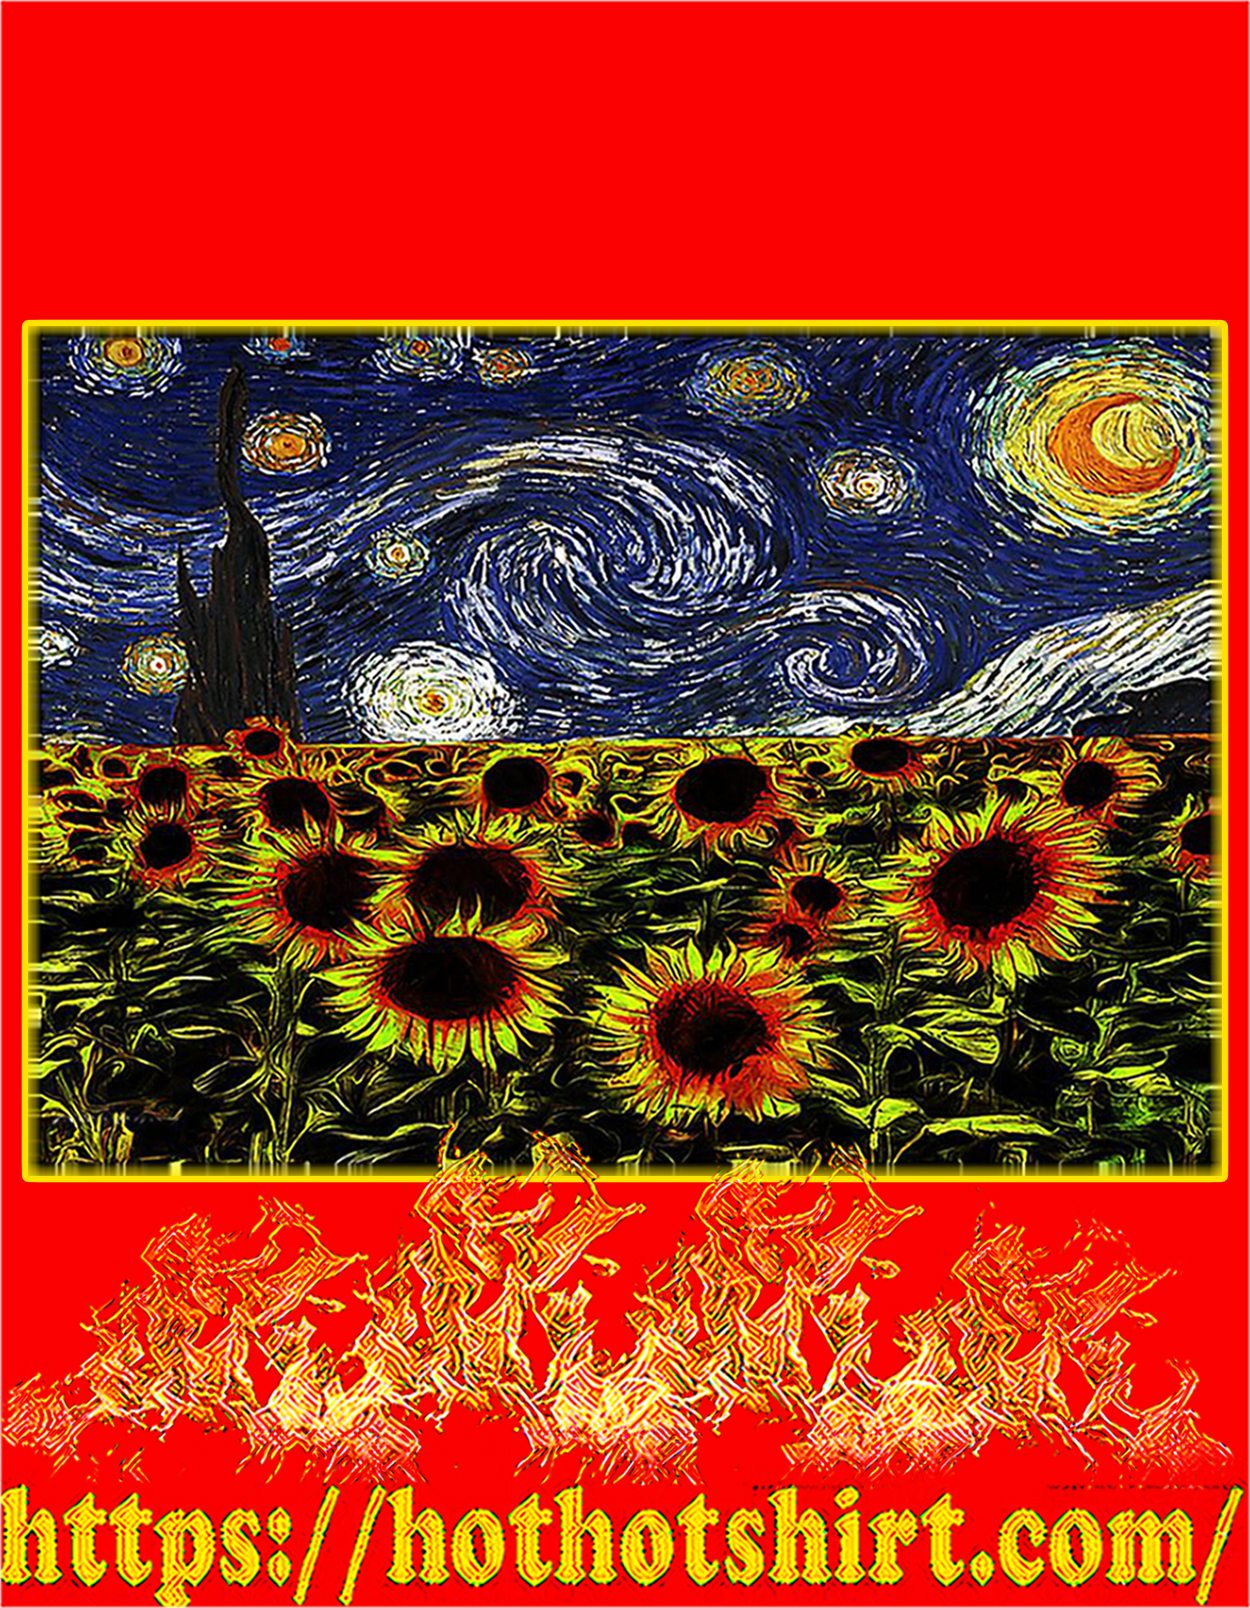 Sunflowers starry night van gogh poster - A3